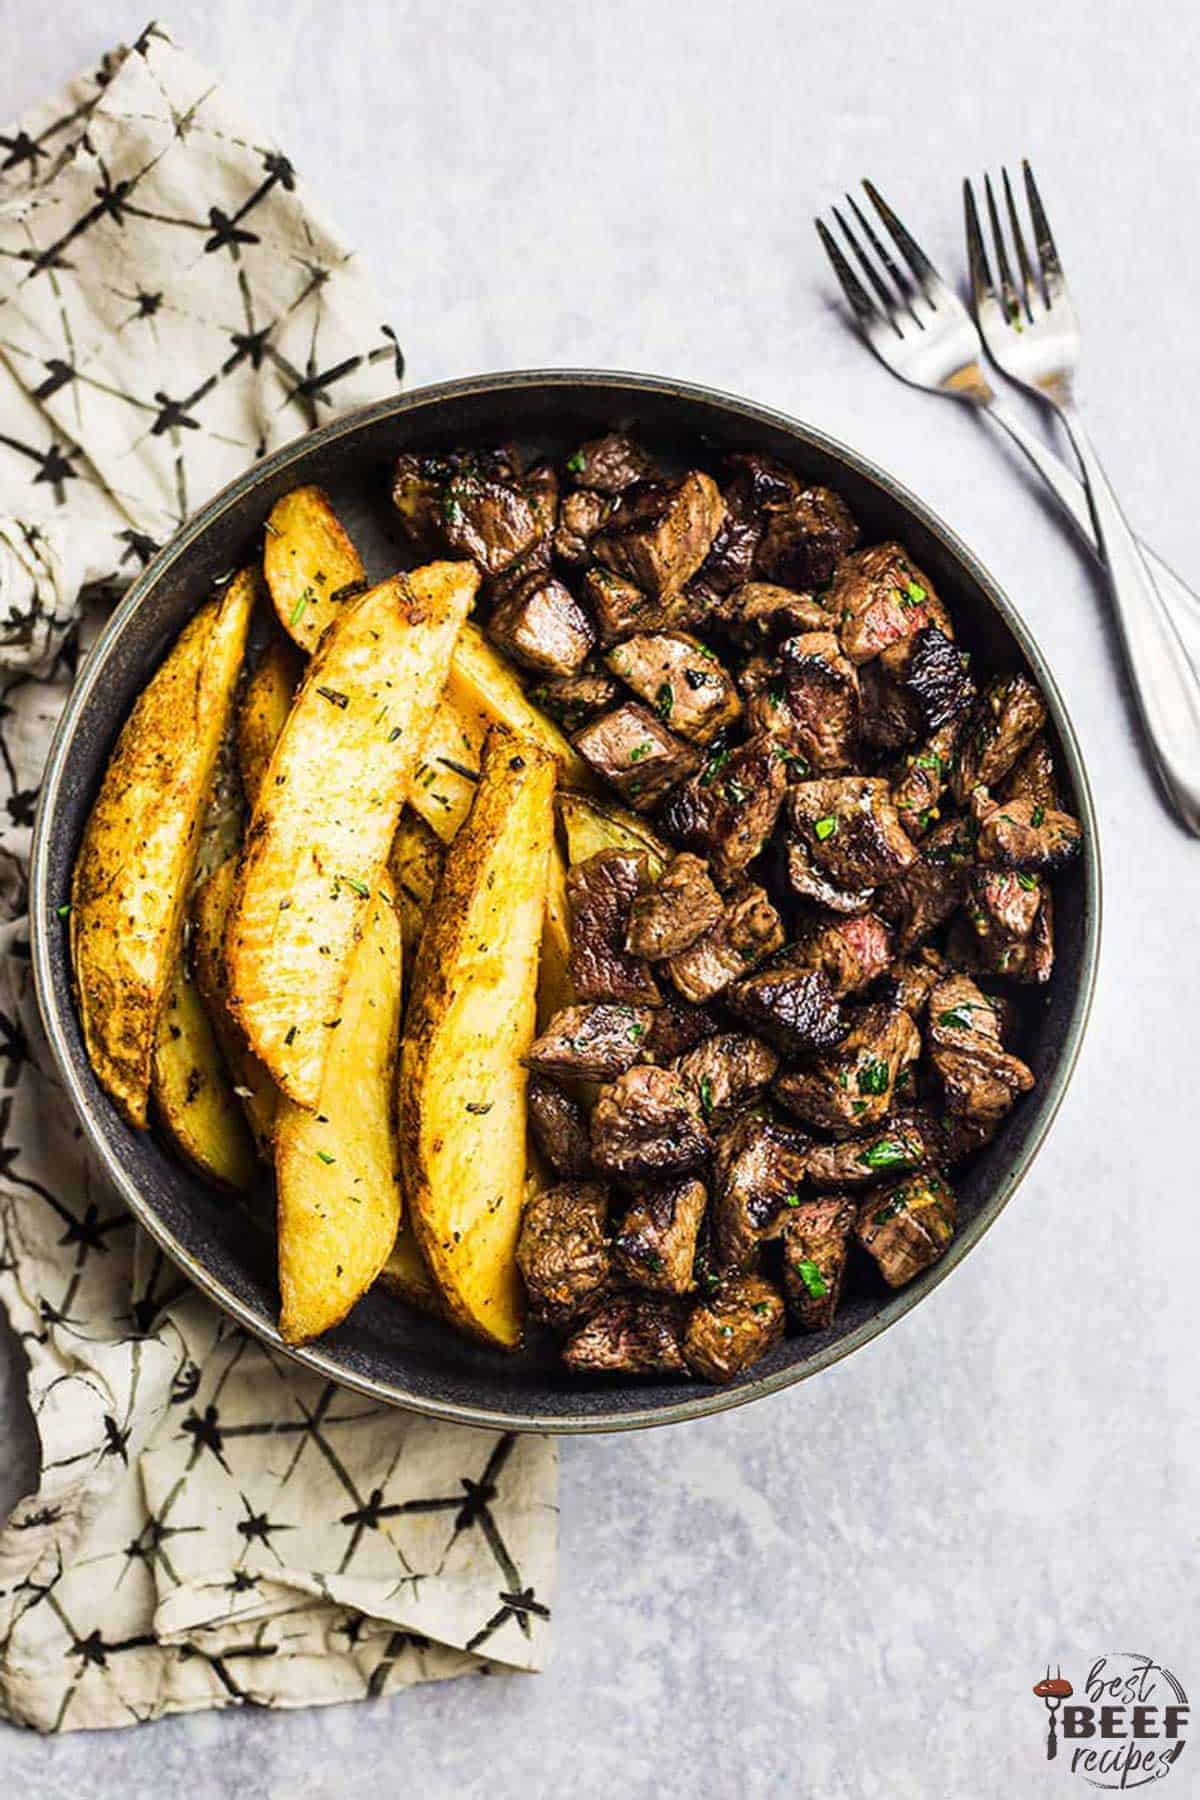 Steak bites in a round bowl with potato wedges